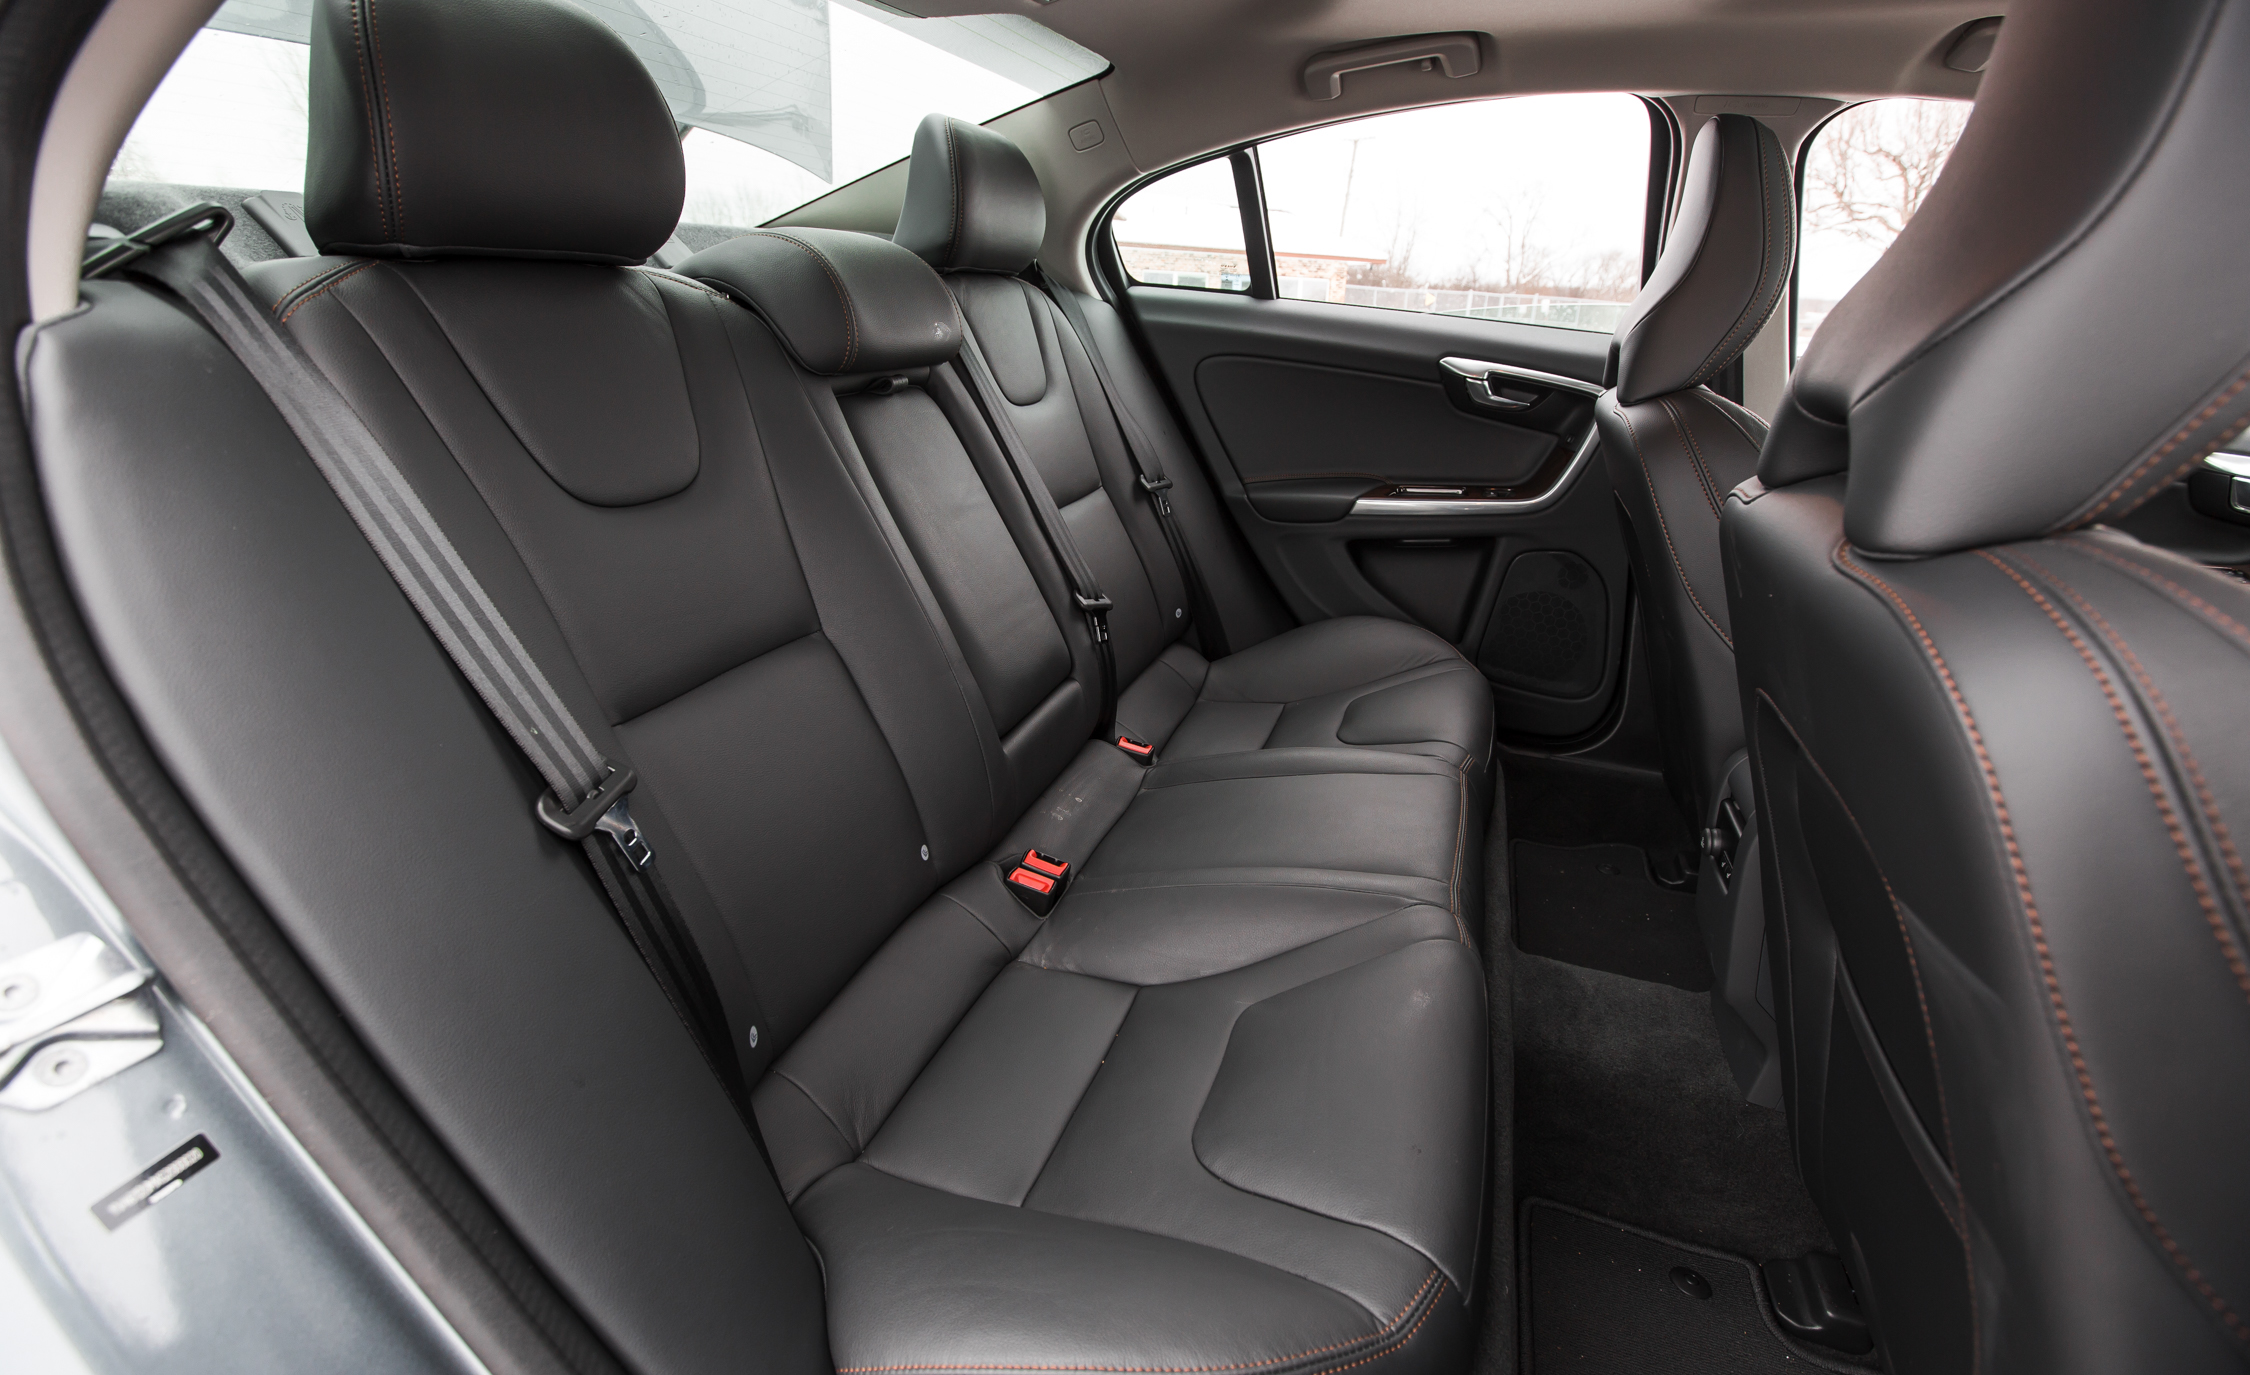 2016 Volvo S60 Cross Country Interior Rear Passenger Seats (Photo 19 of 21)